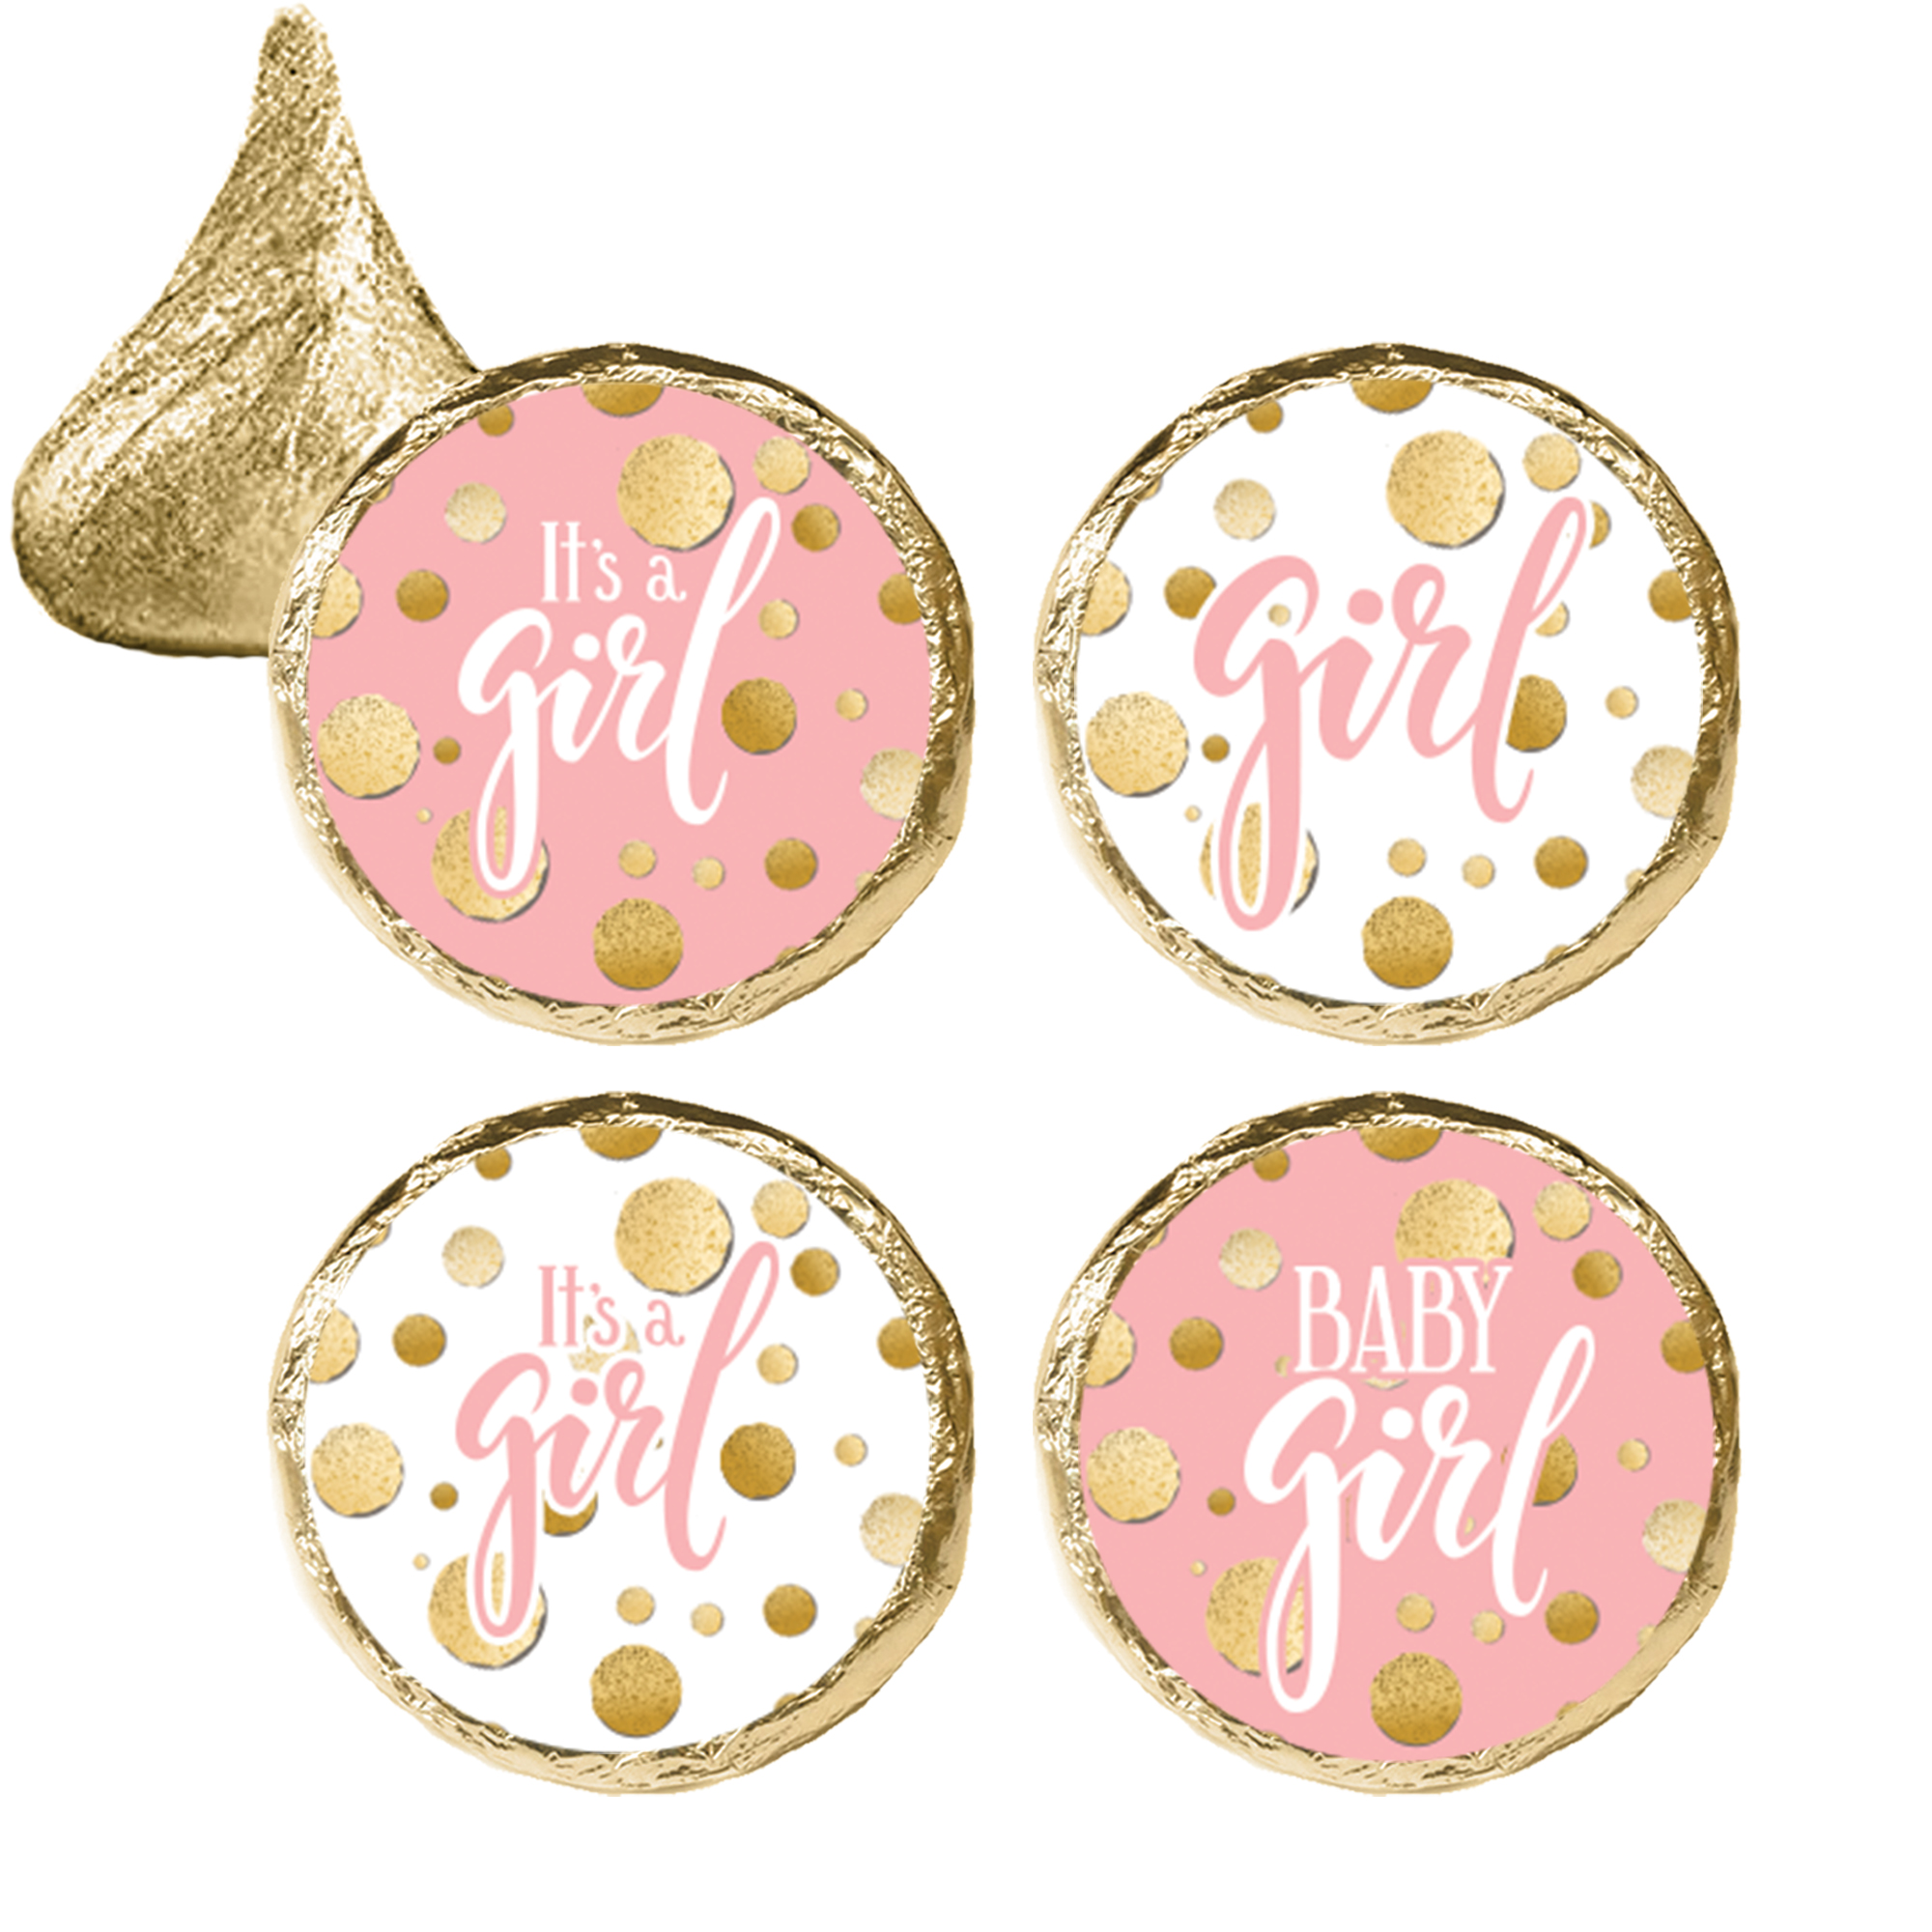 Pink Gold Girl Baby Shower Stickers 324ct - Pink and Gold Its a Girl Baby Shower Decorations Candy Favors - 324 Count Stickers